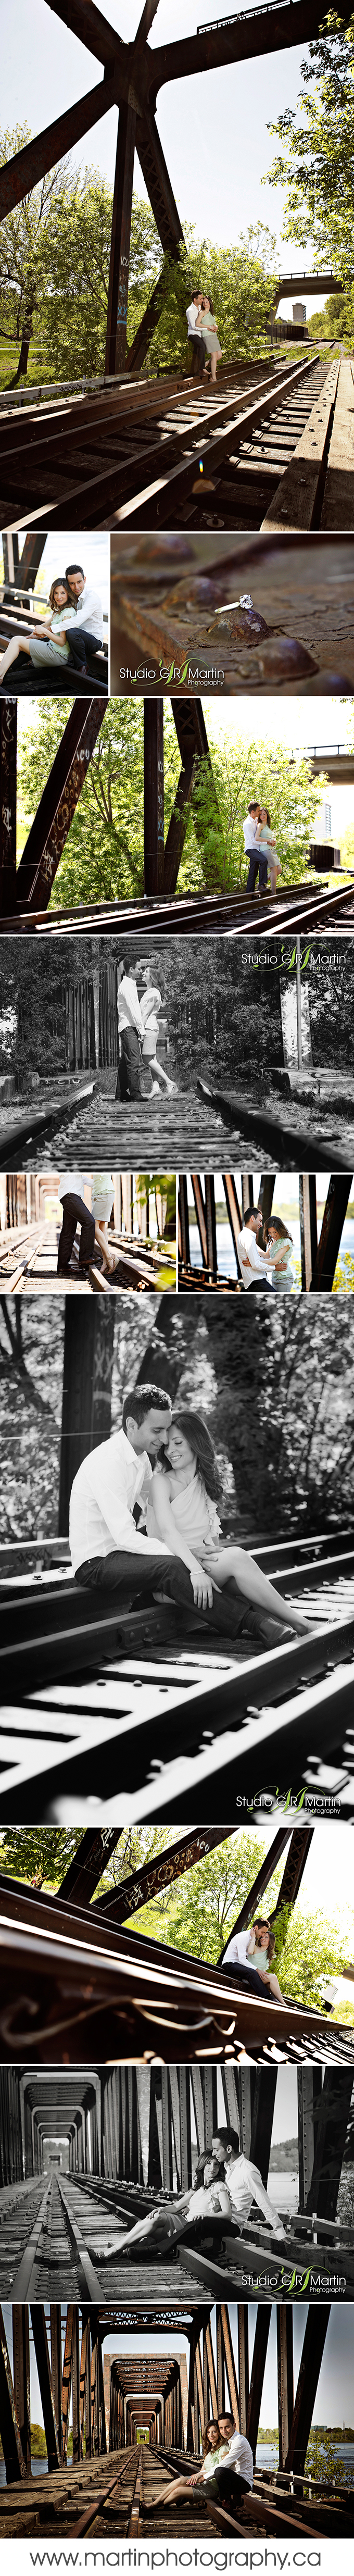 Train track engagement photography in Ottawa, Railroad train track couple photography ottawa